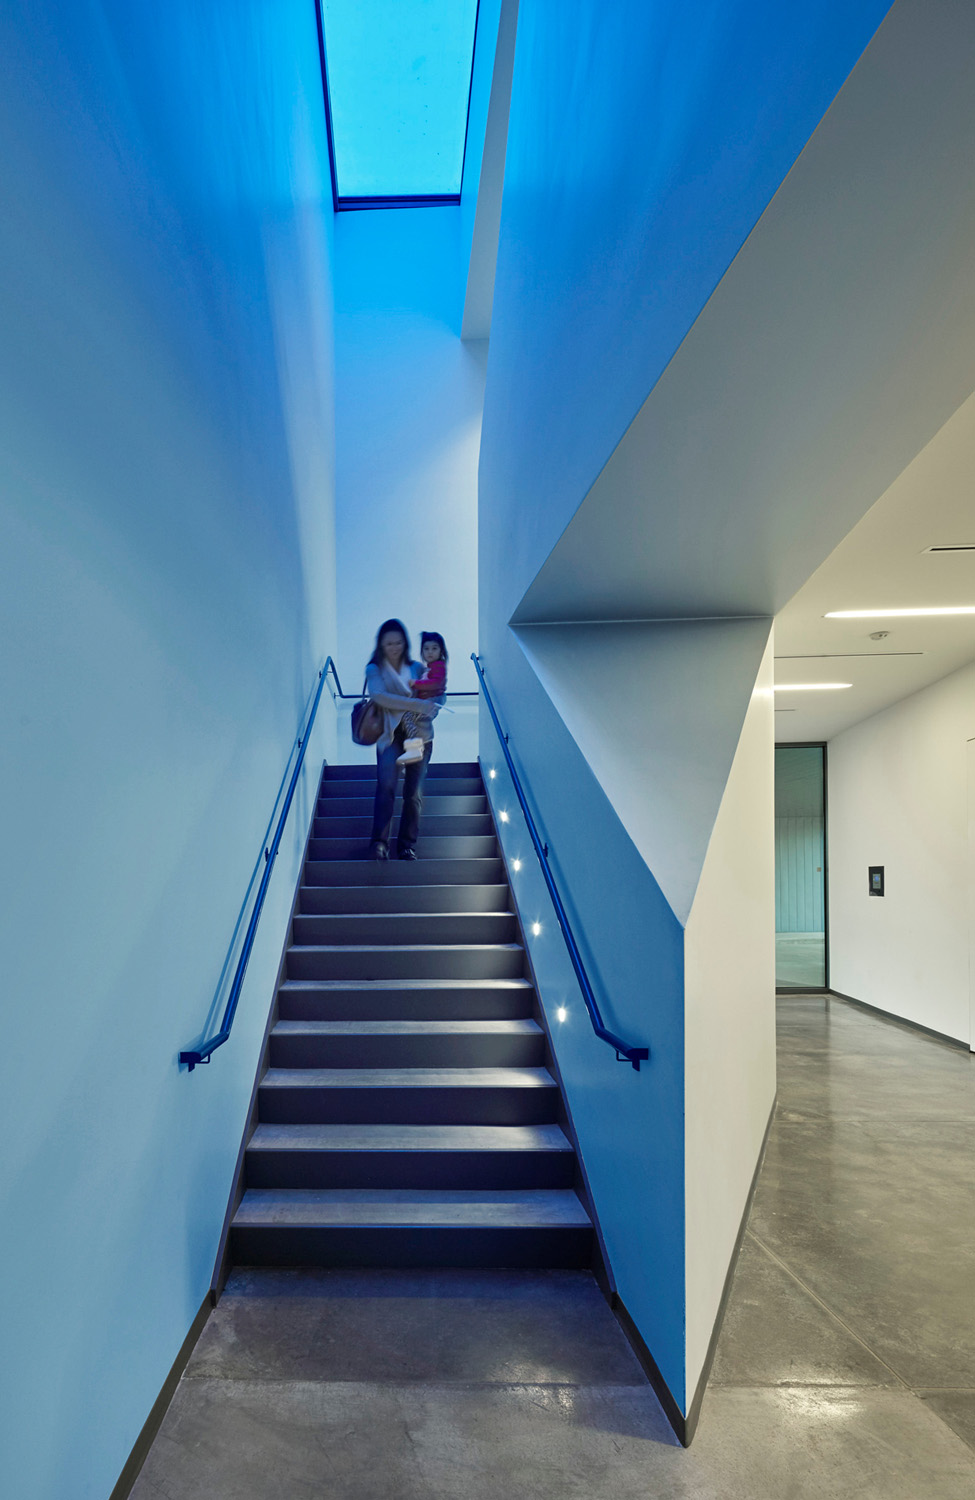 Blue glass in the skylight washes the Clinic Stair with blue light